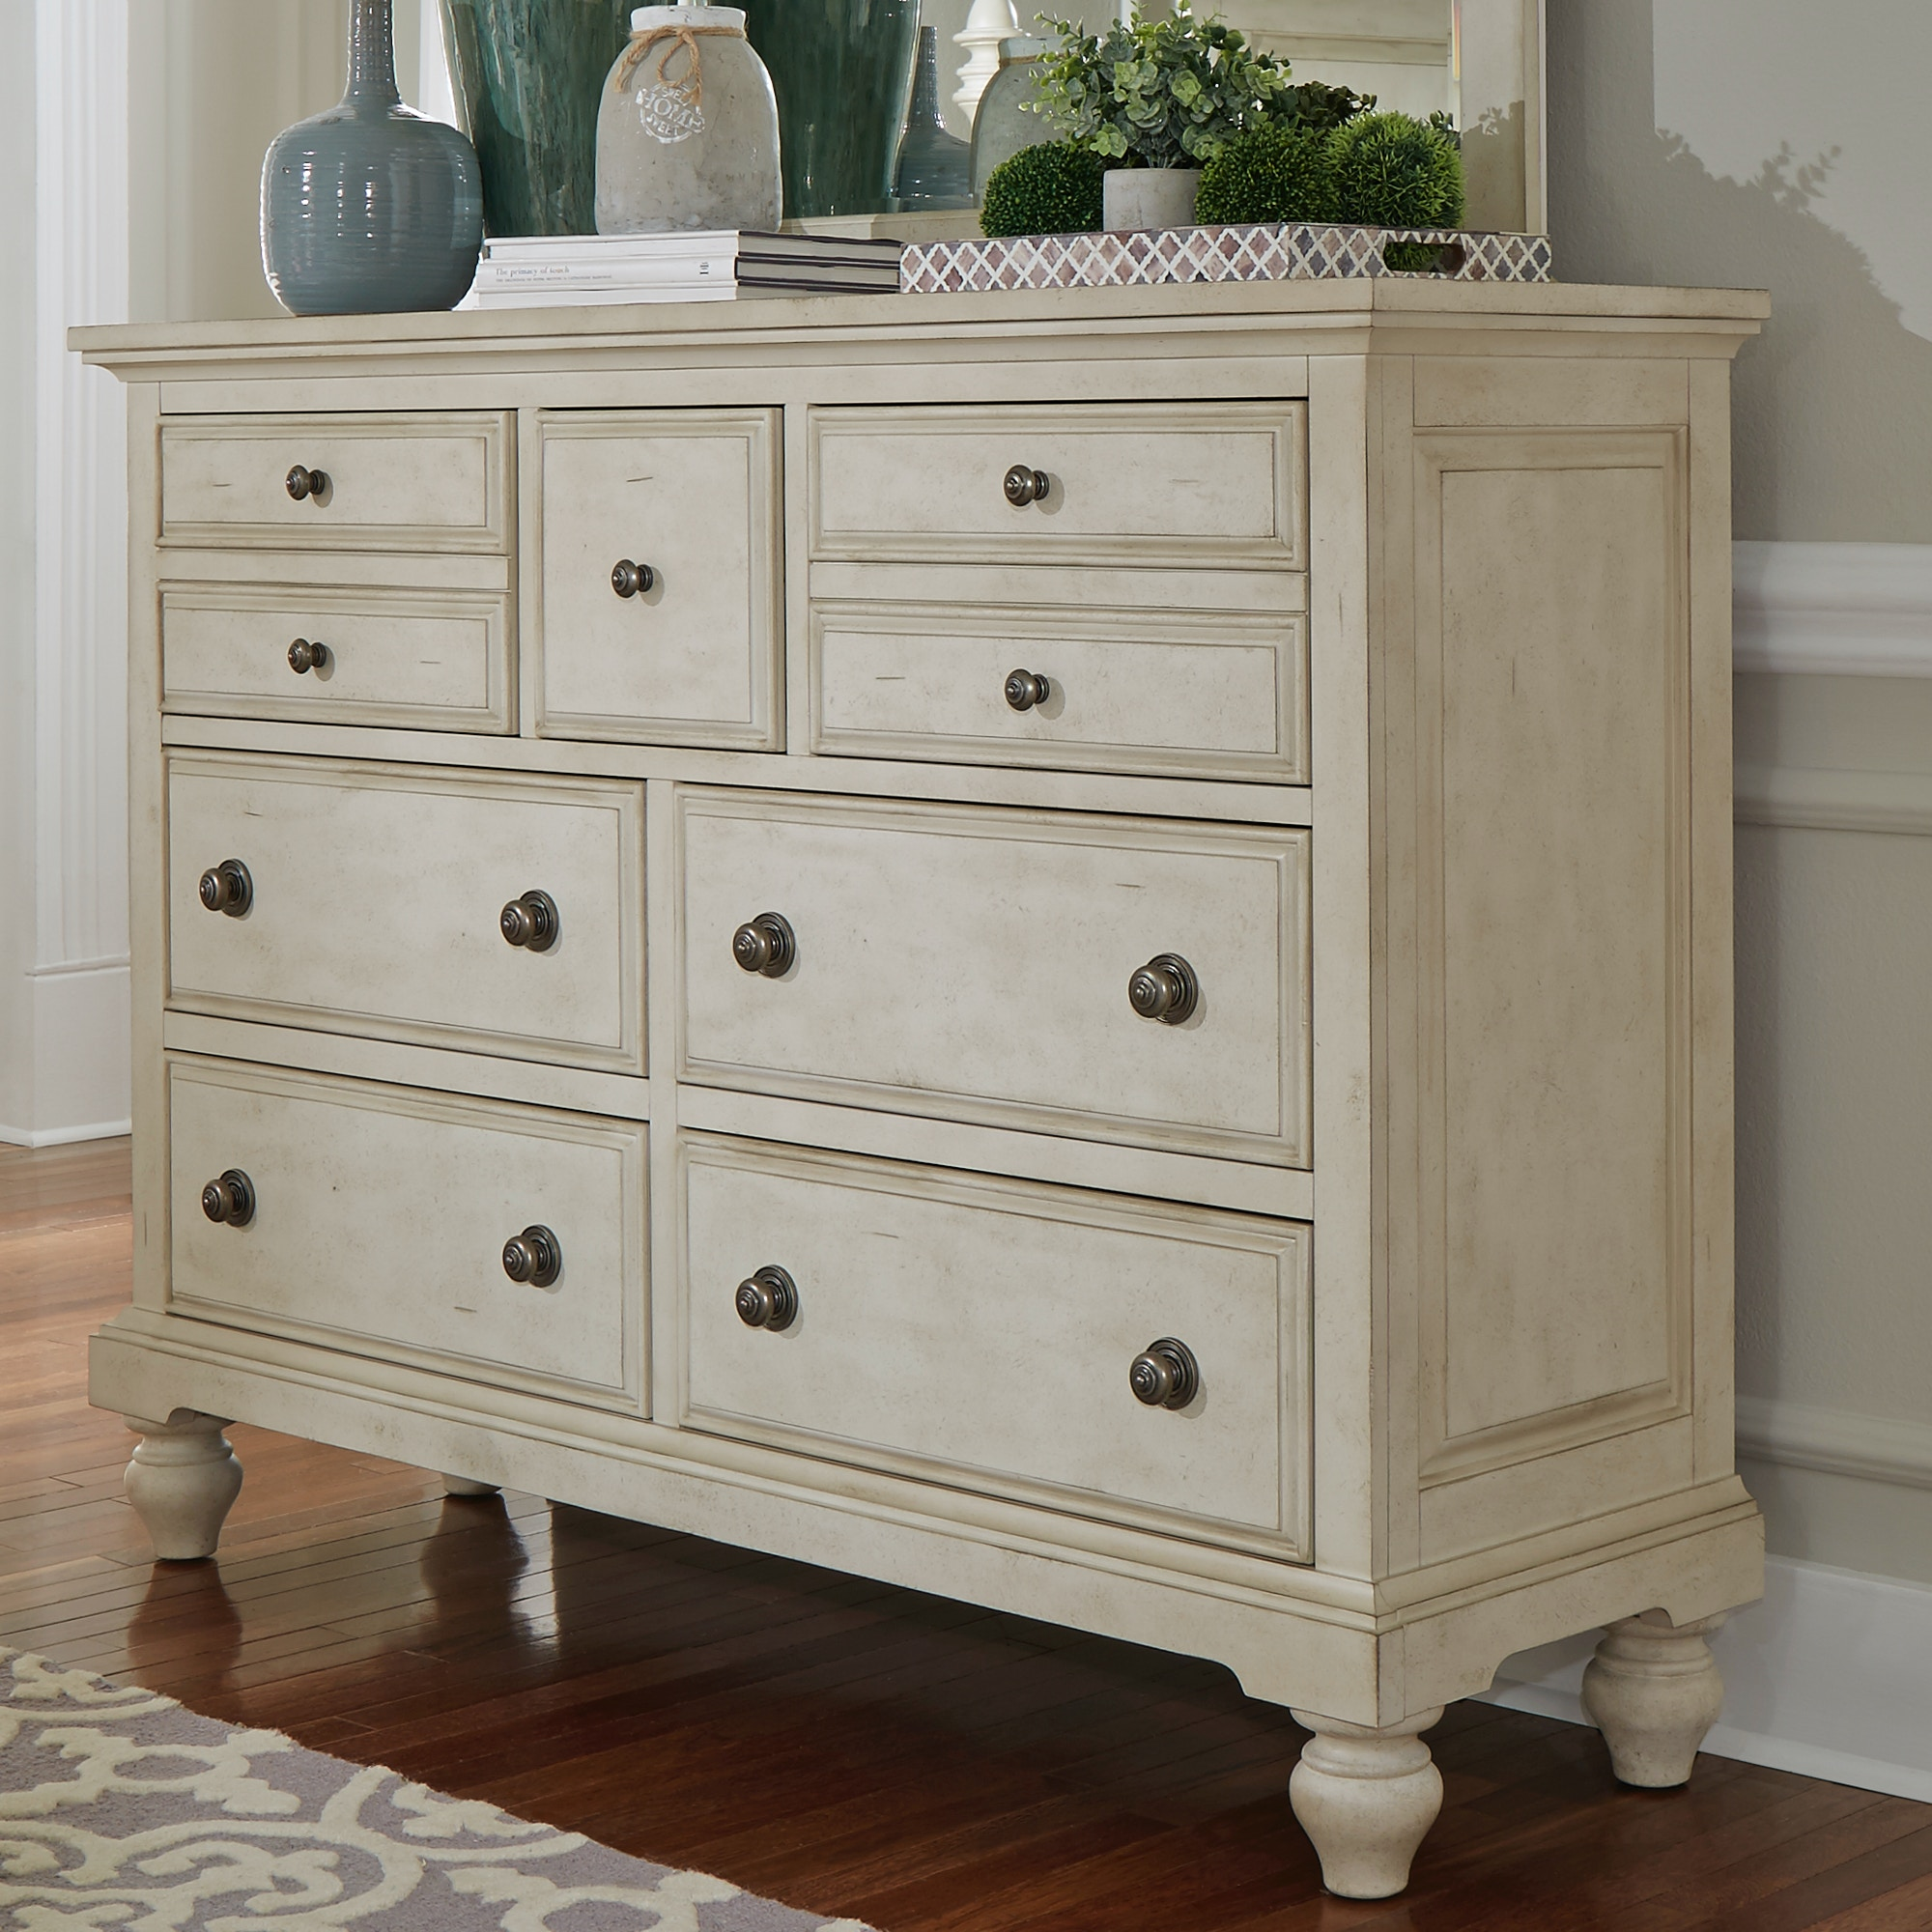 Liberty Furniture Bedroom 7 Drawer Chesser 697 Br31 T H Perkins Furniture Brookhaven Ms